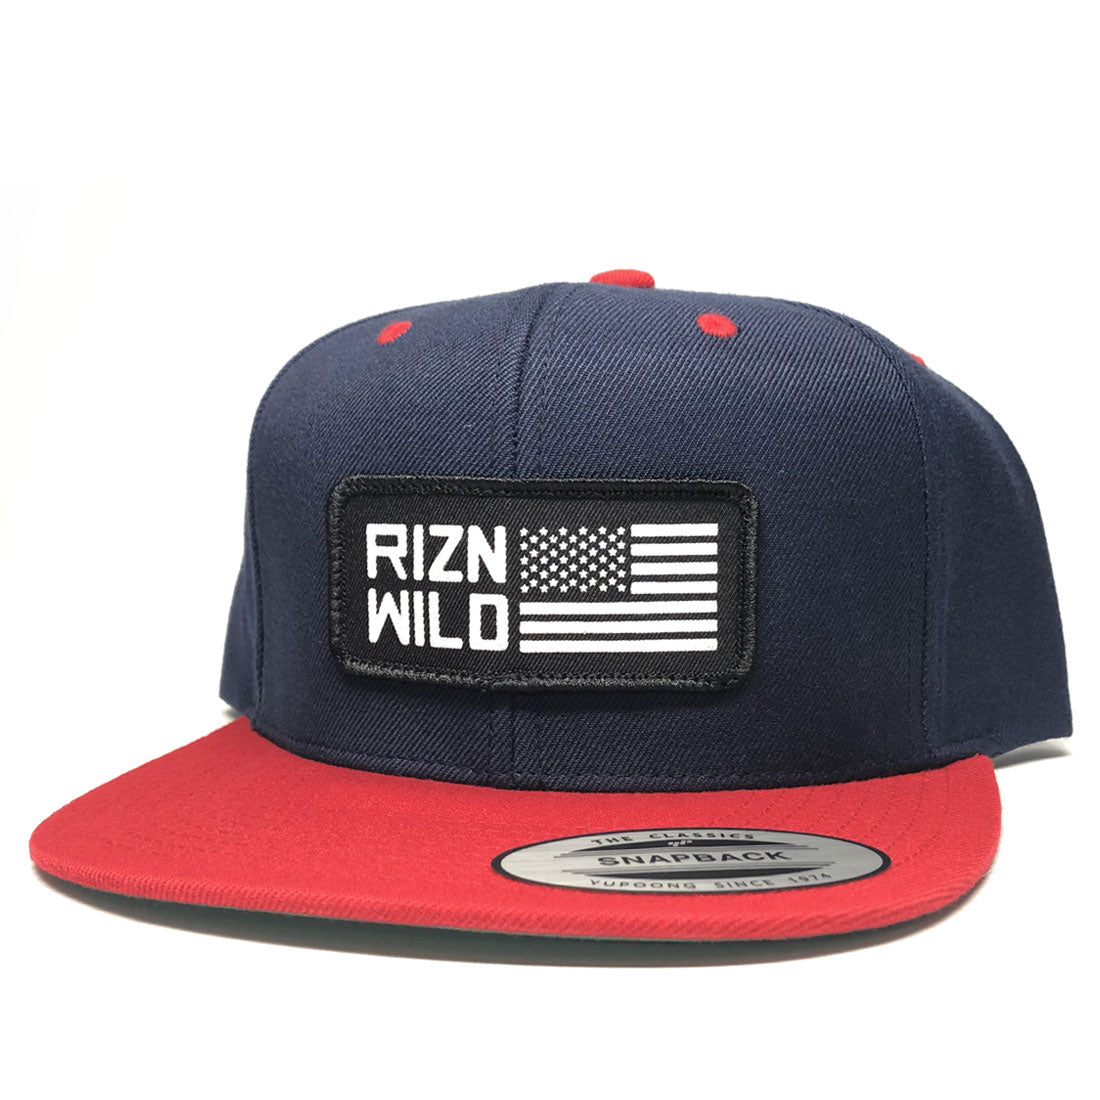 43aae684880ce Liberty Flexfit Snapback Hat in Navy Red – RIZNWILD